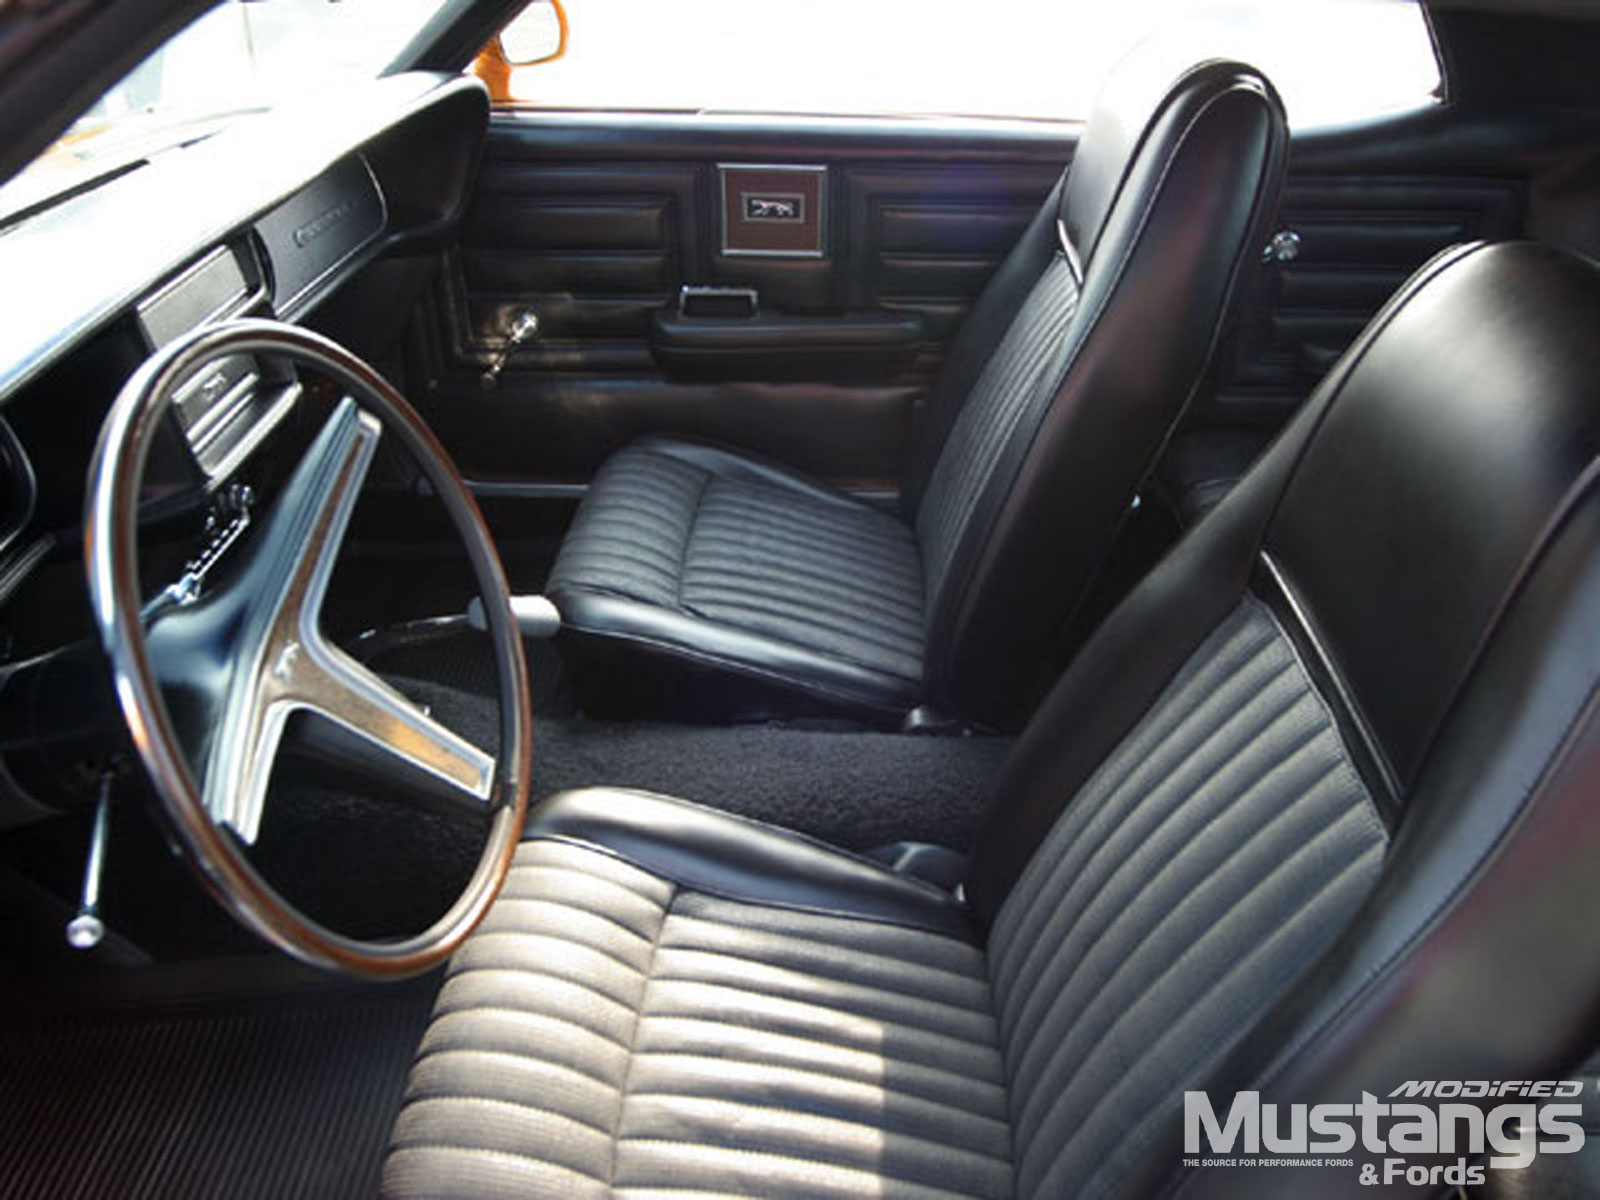 1970 Mercury Cougar Eliminator Interior